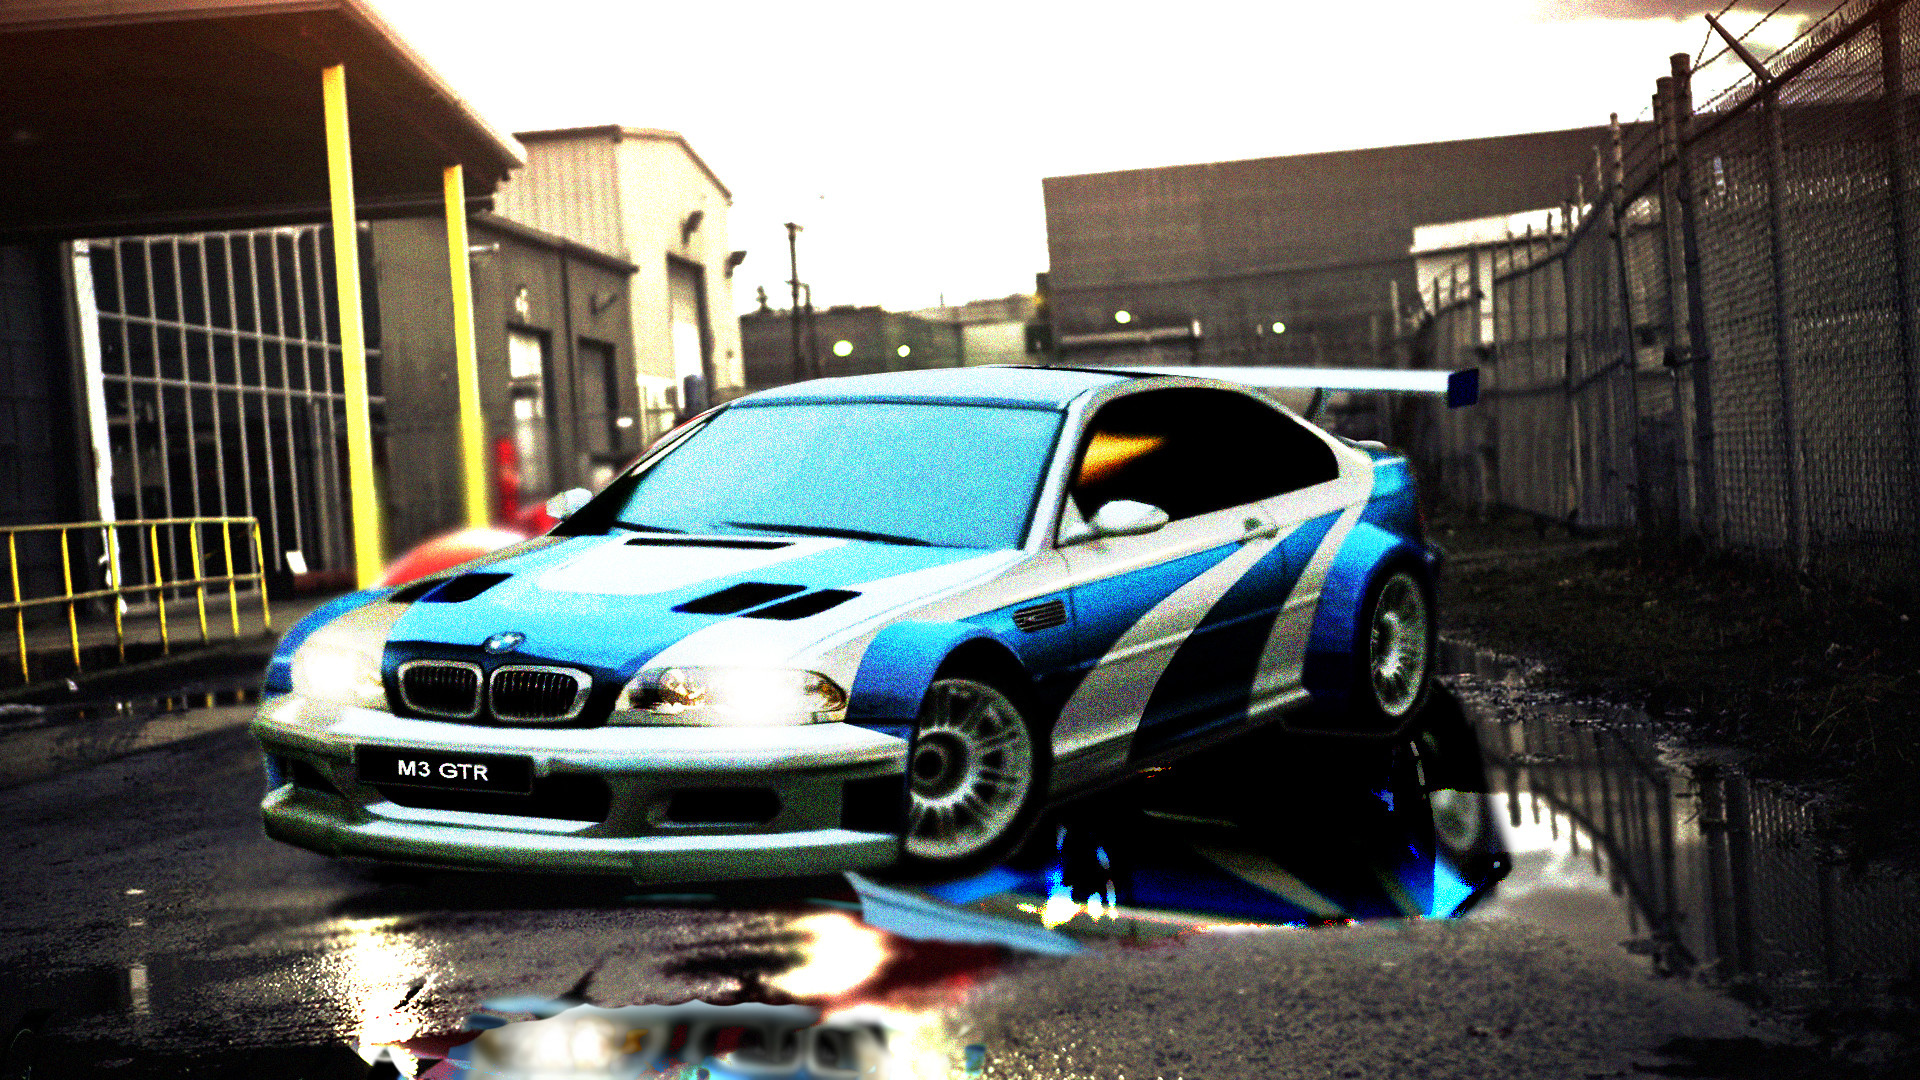 Bmw M3 Gtr Nfs Most Wanted Wallpaper Hd By Gothicdiamond99 Nfs Most Wanted Bmw Hd 1920x1080 Wallpaper Teahub Io